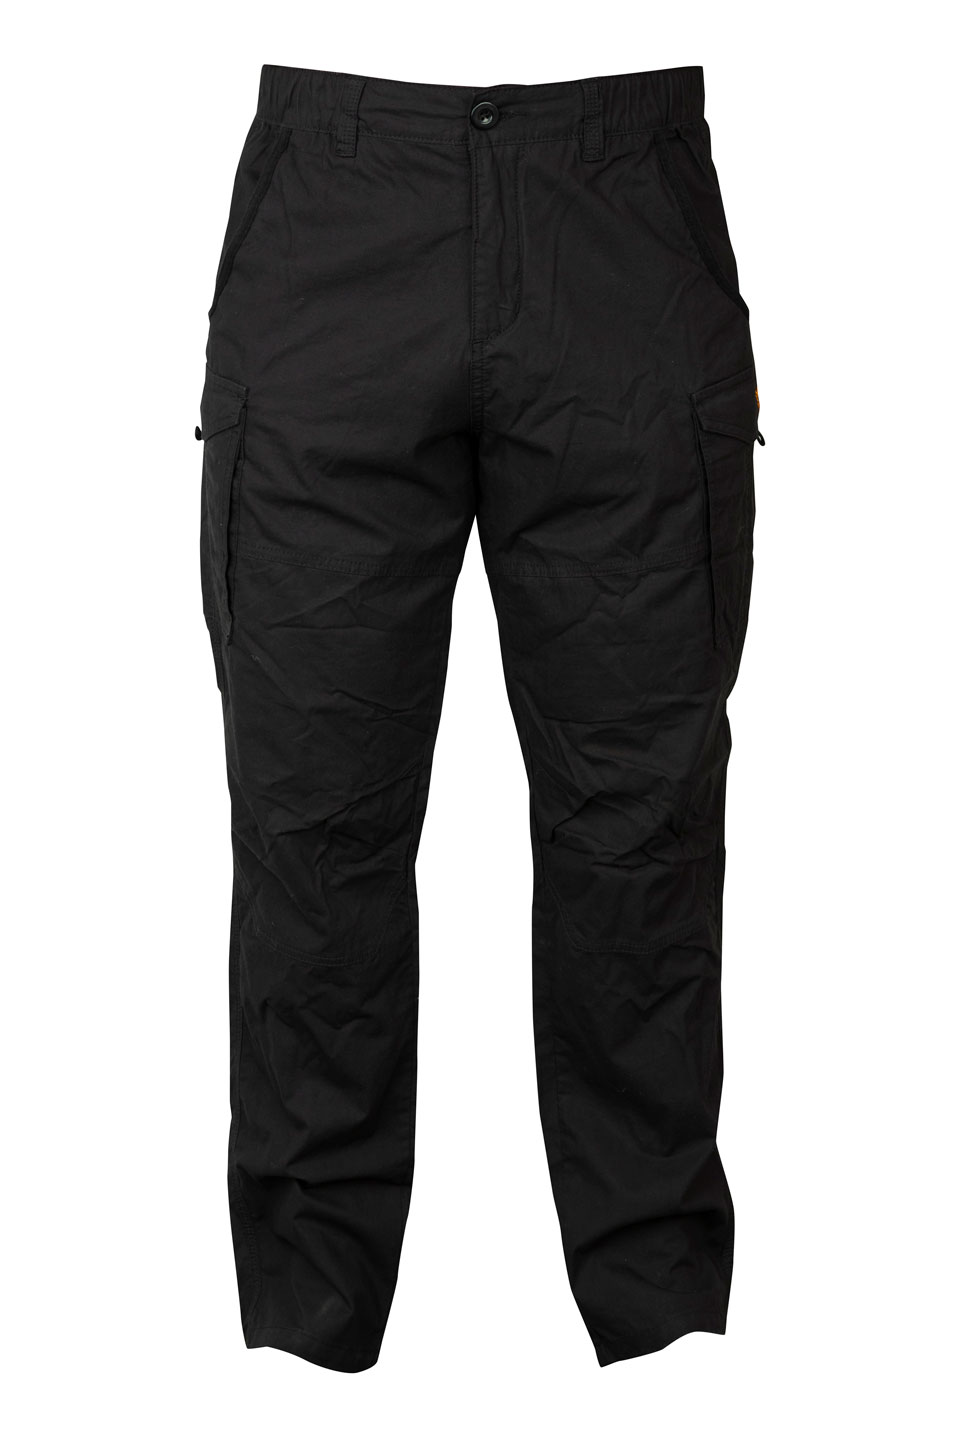 fox-collection-combat-trousers_black-orange_maingif